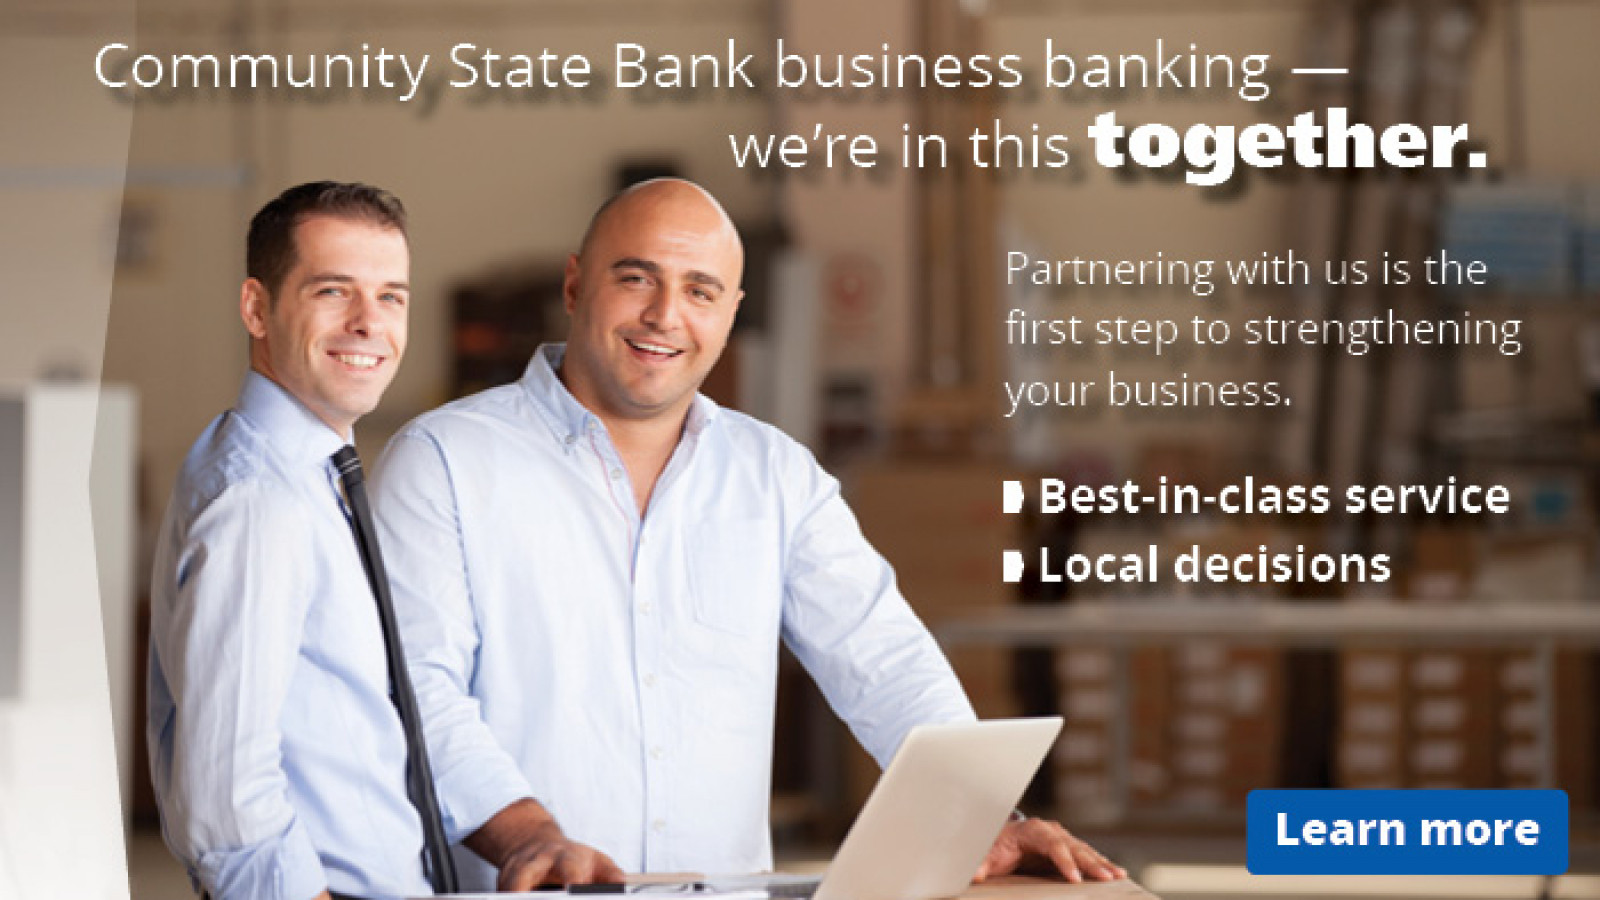 Community State Bank web ad commercial